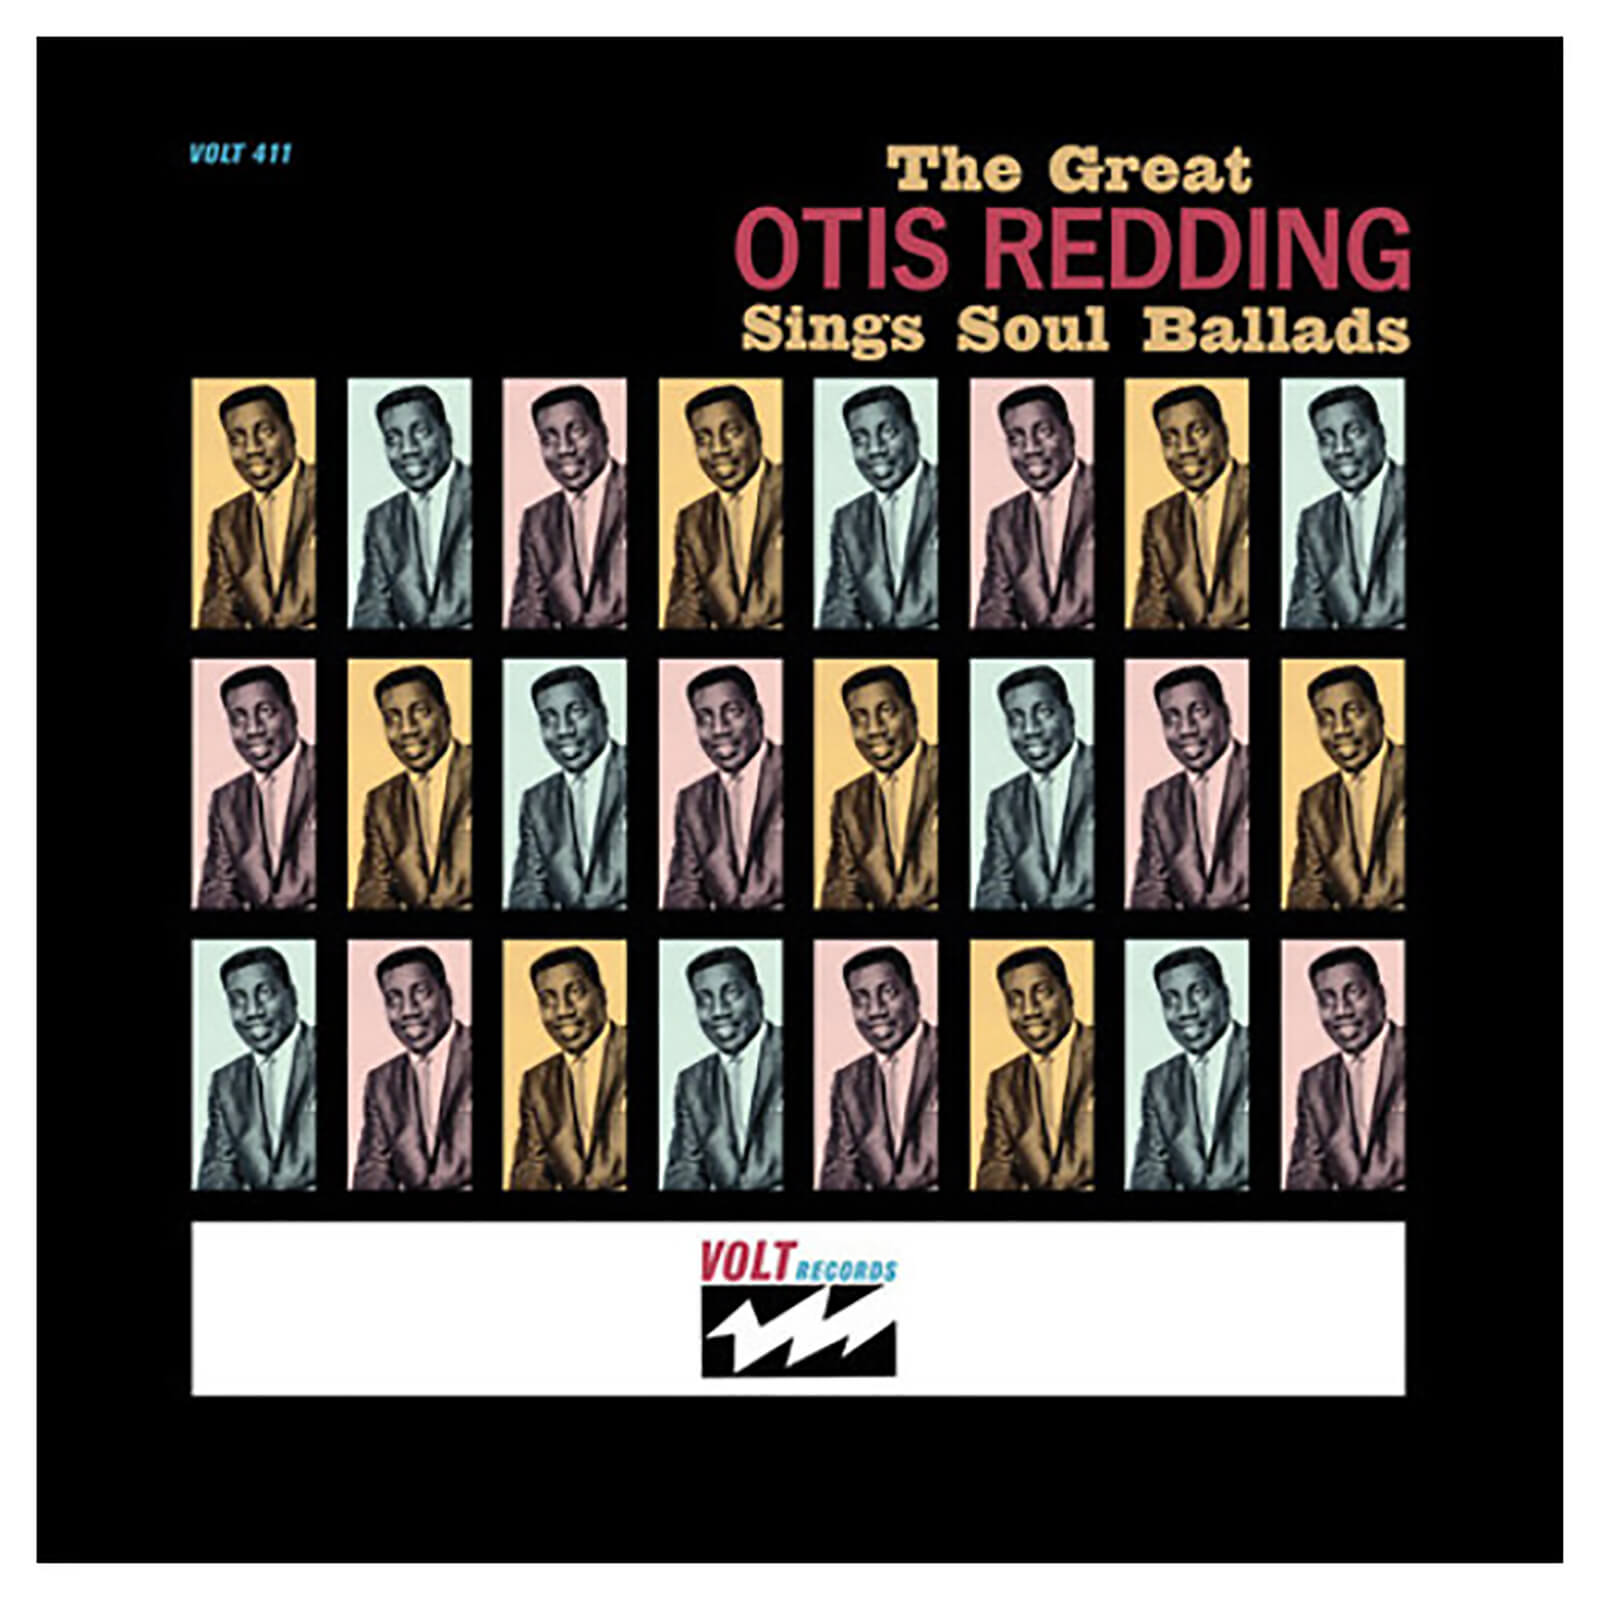 Otis Redding - Great Otis Redding Sings Soul Ballads - Vinyl